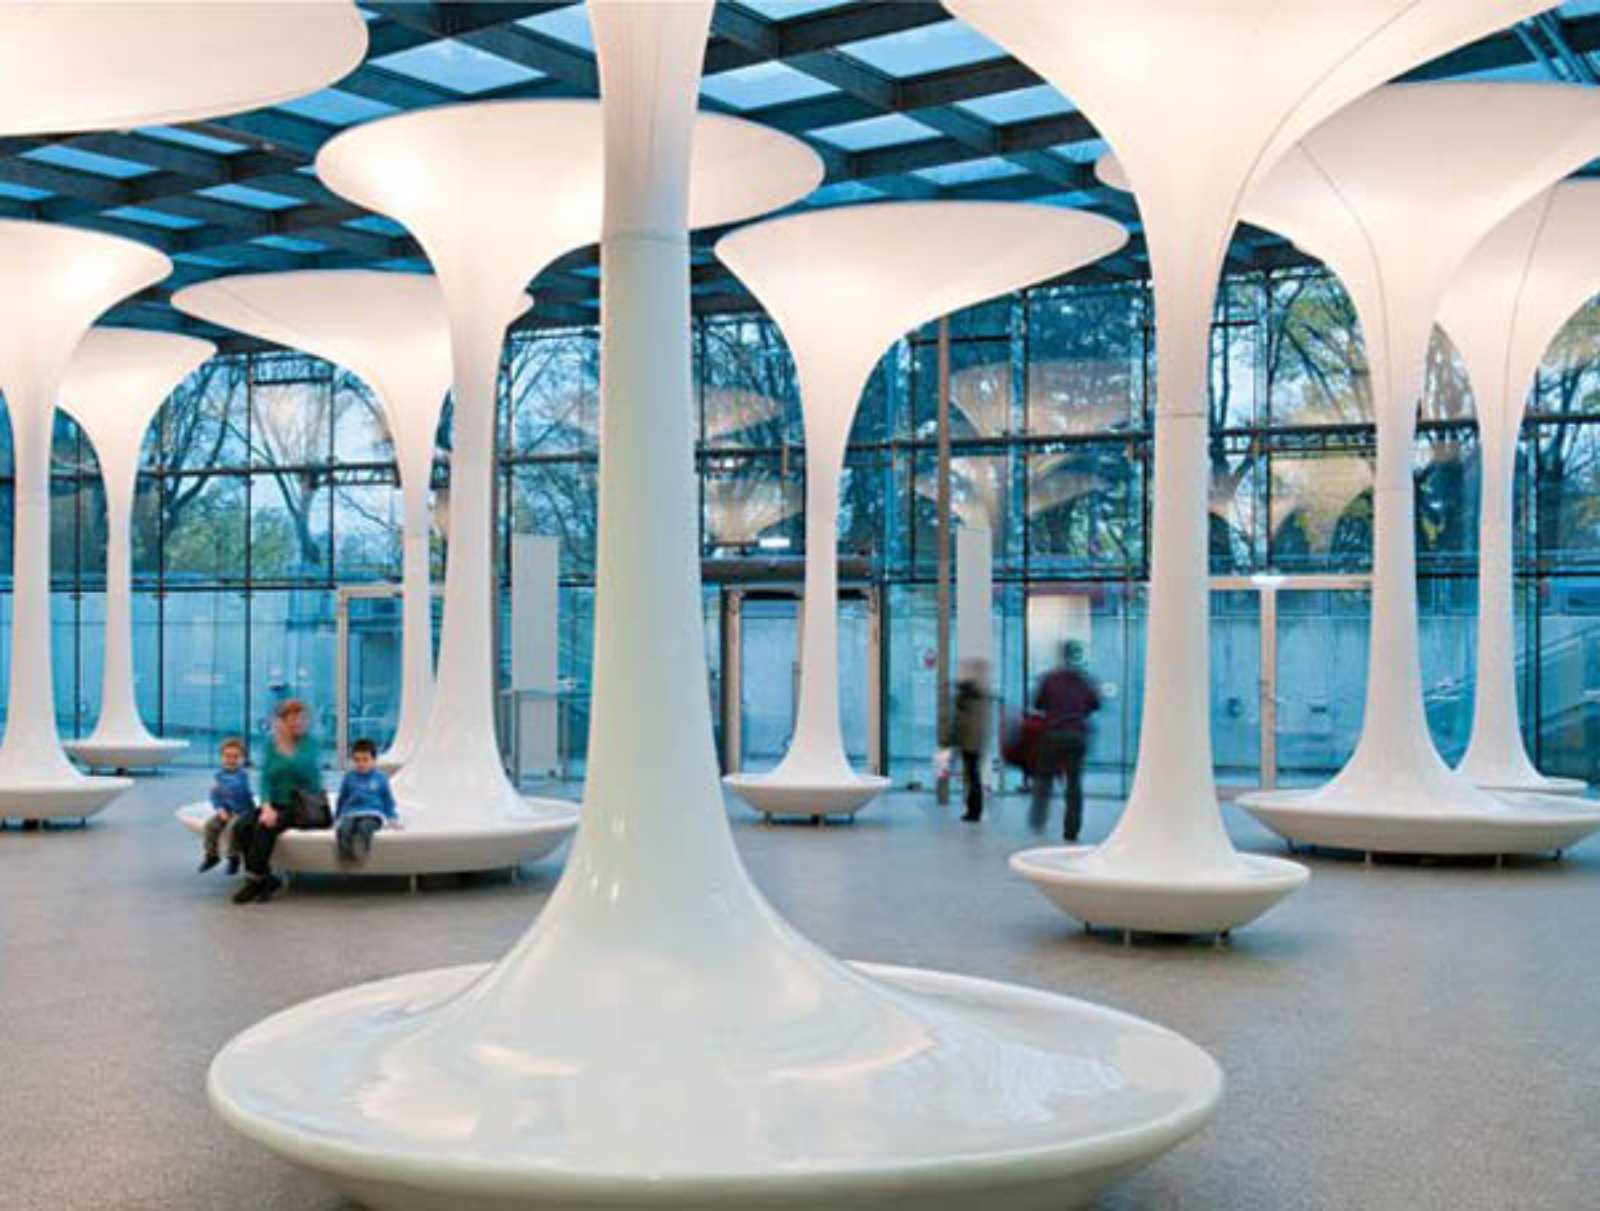 Tmw technical museum entrance foyer by querkraft architects